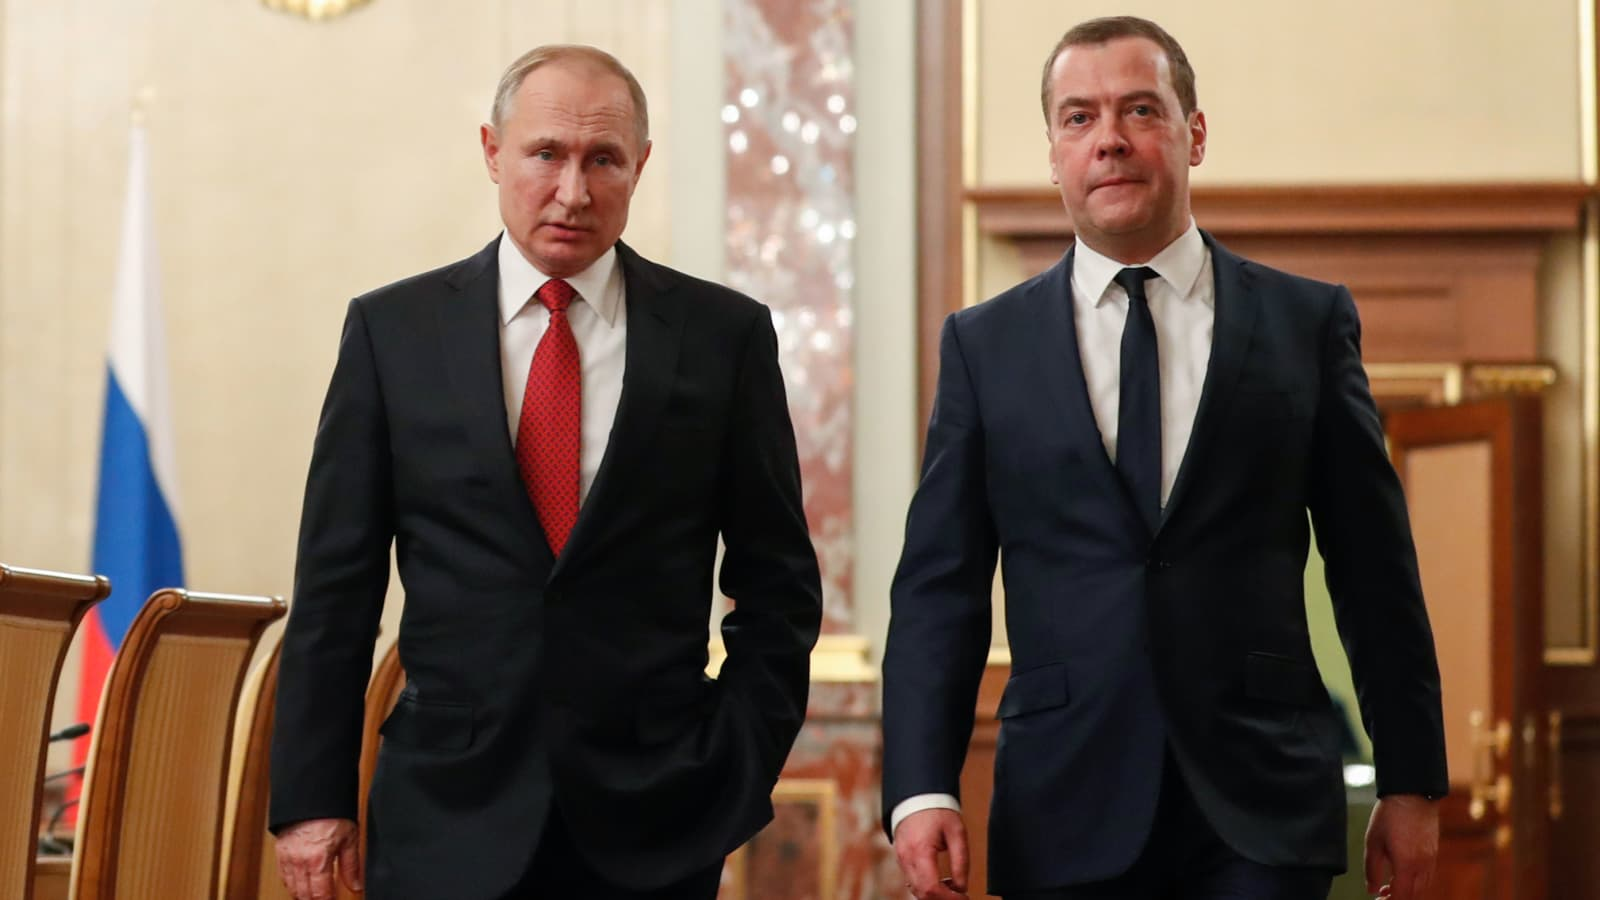 Putin S Call For Reform Of Russia Govt Leads To Medvedev Resignation